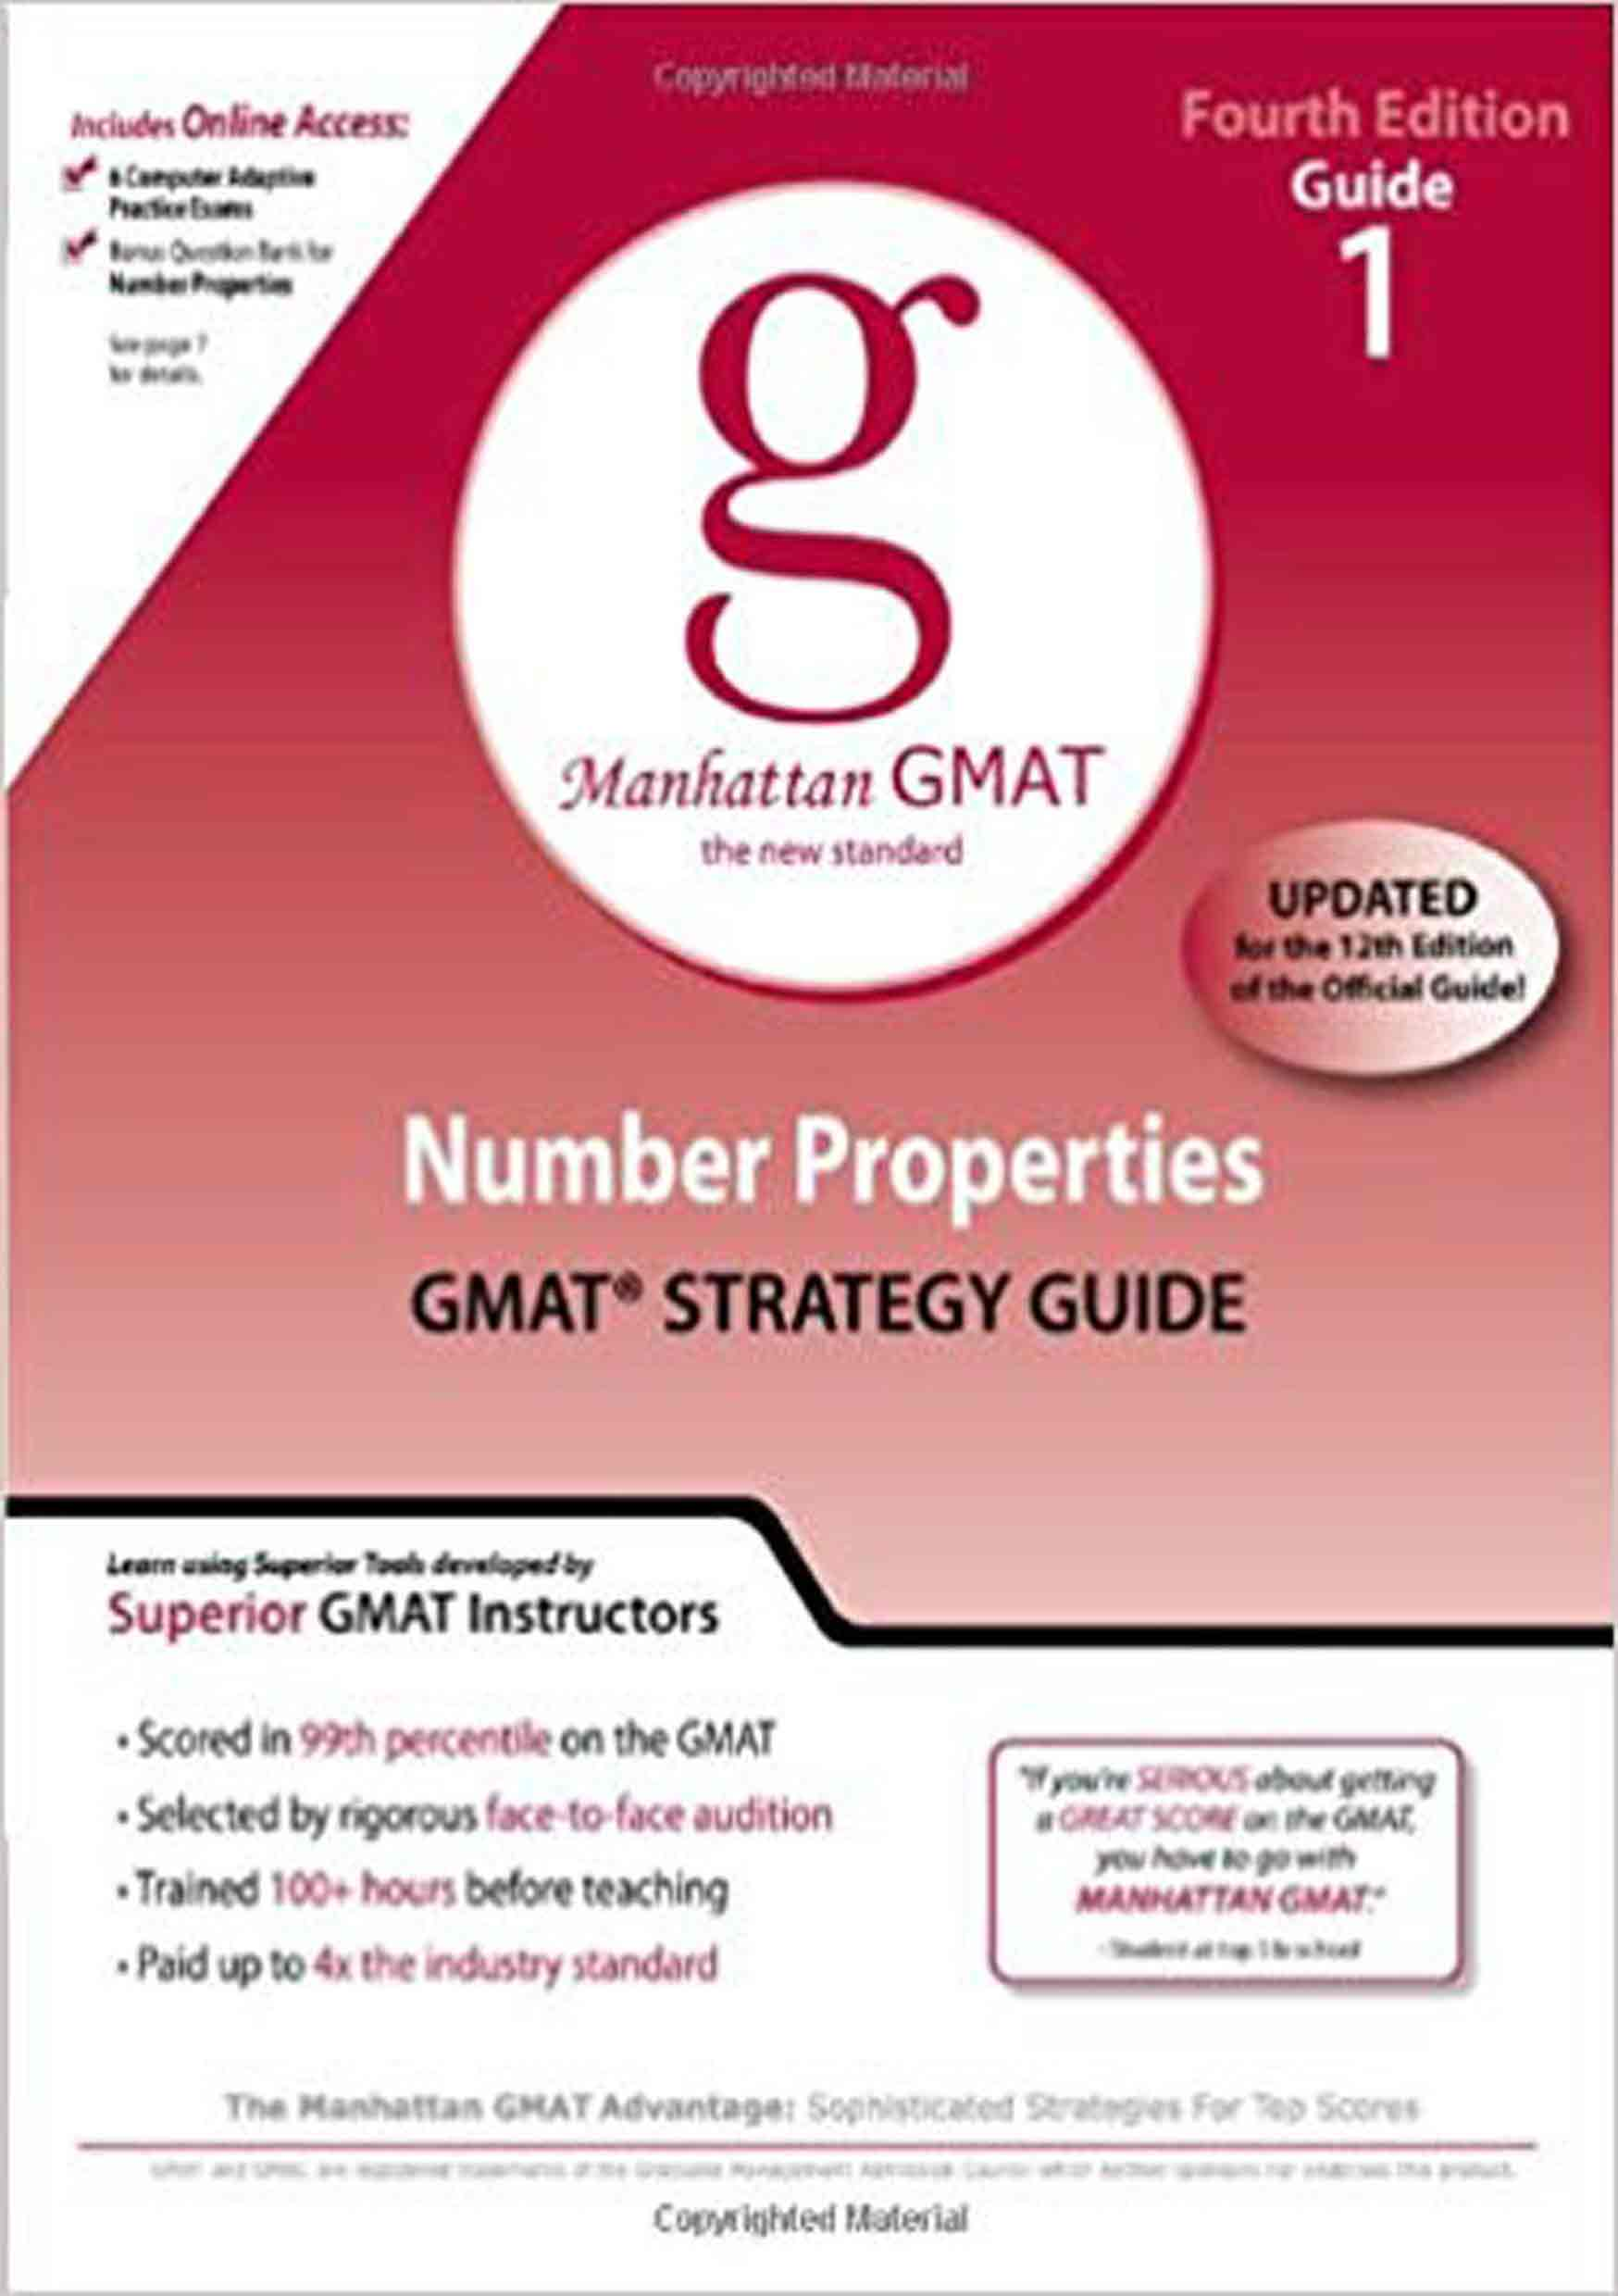 دانلود کتاب Manhattan GMAT Guide 1 : Number Properties pdf